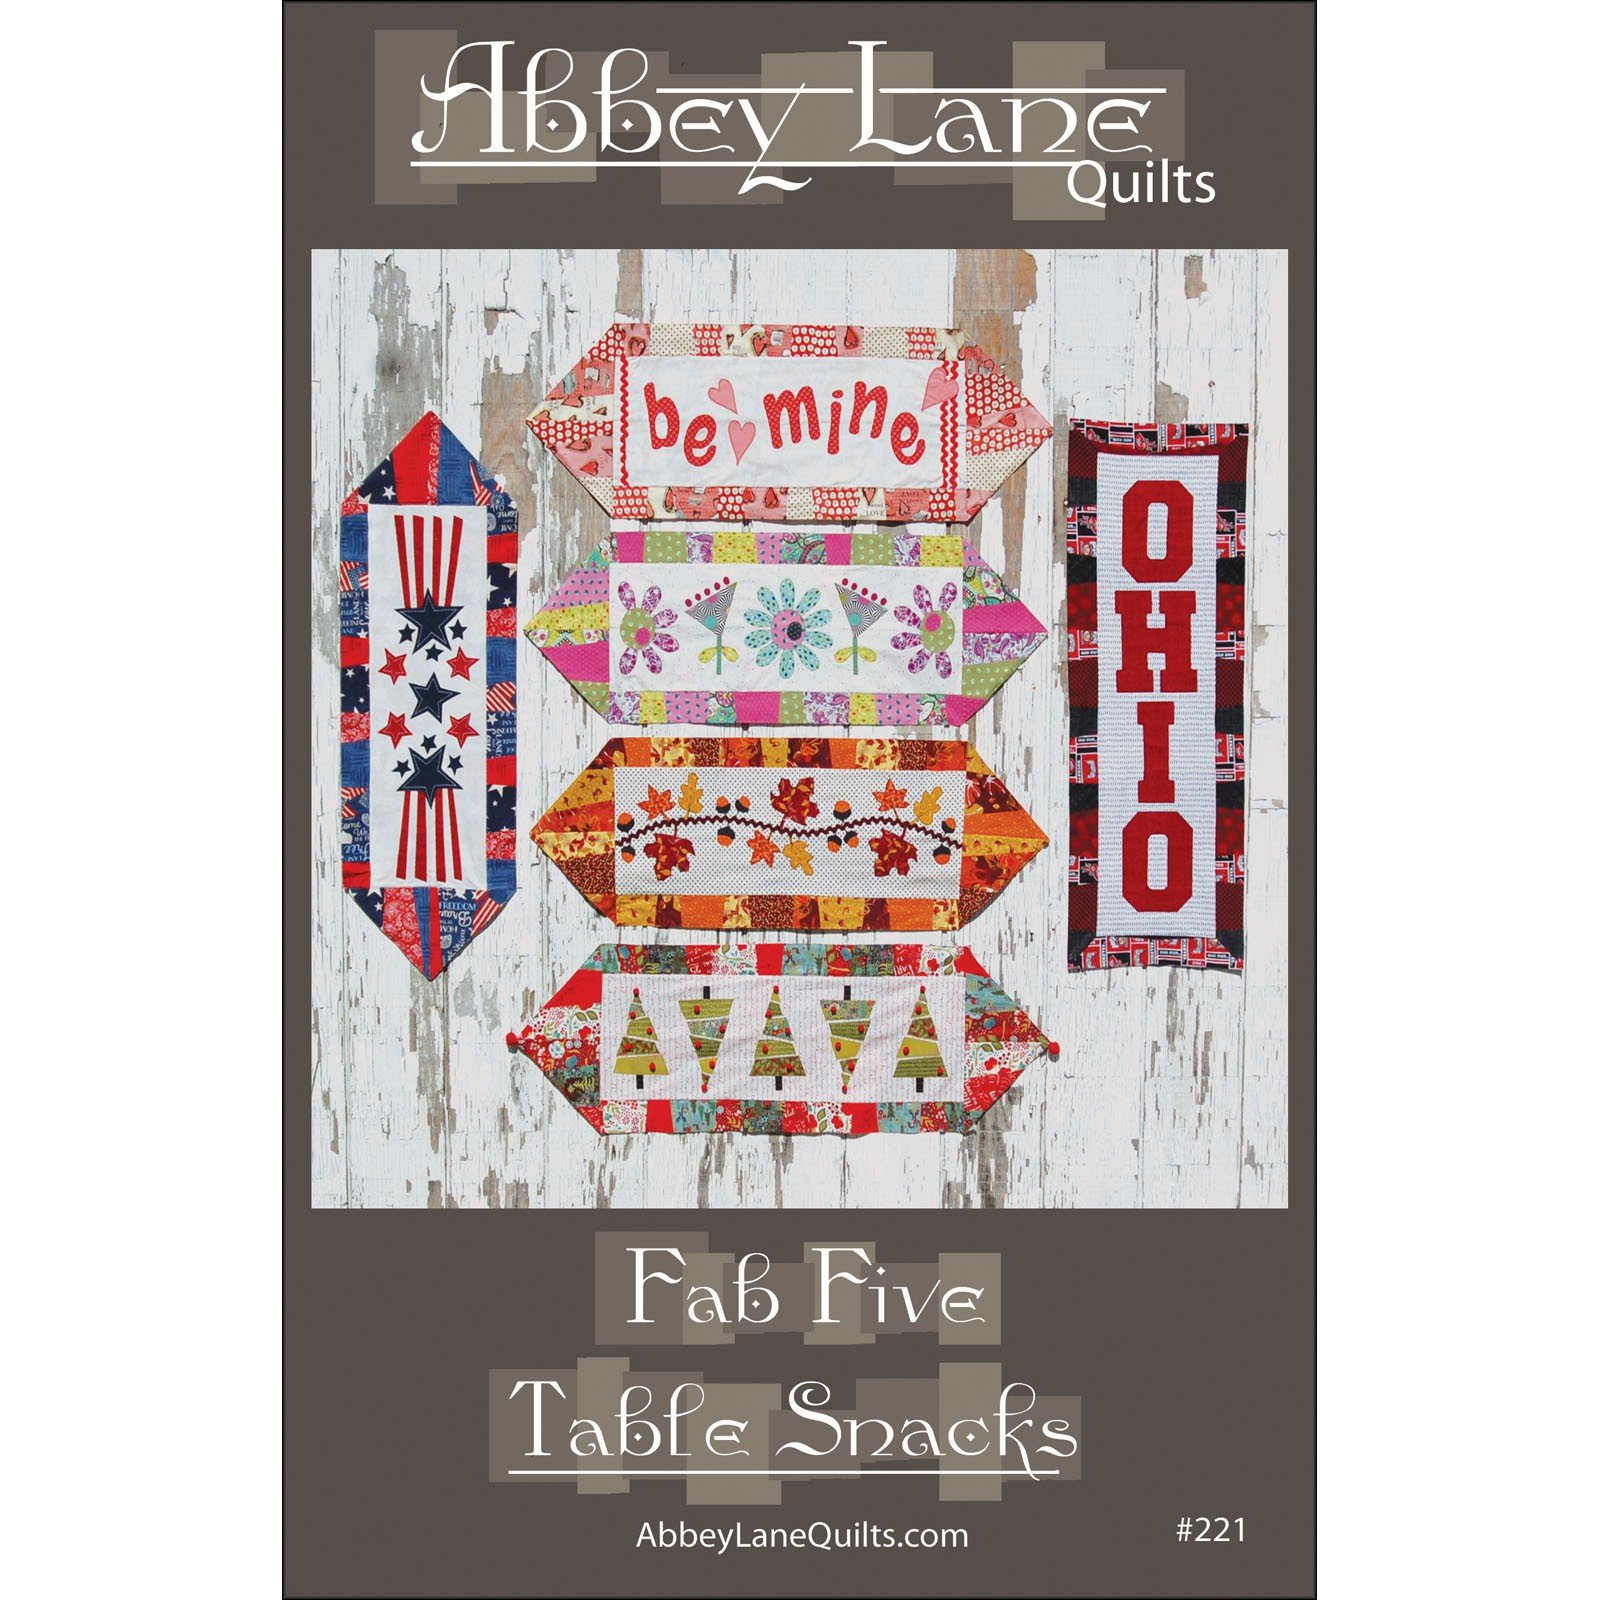 Fab Five Table Snacks<br/>Abbey Lane Quilts